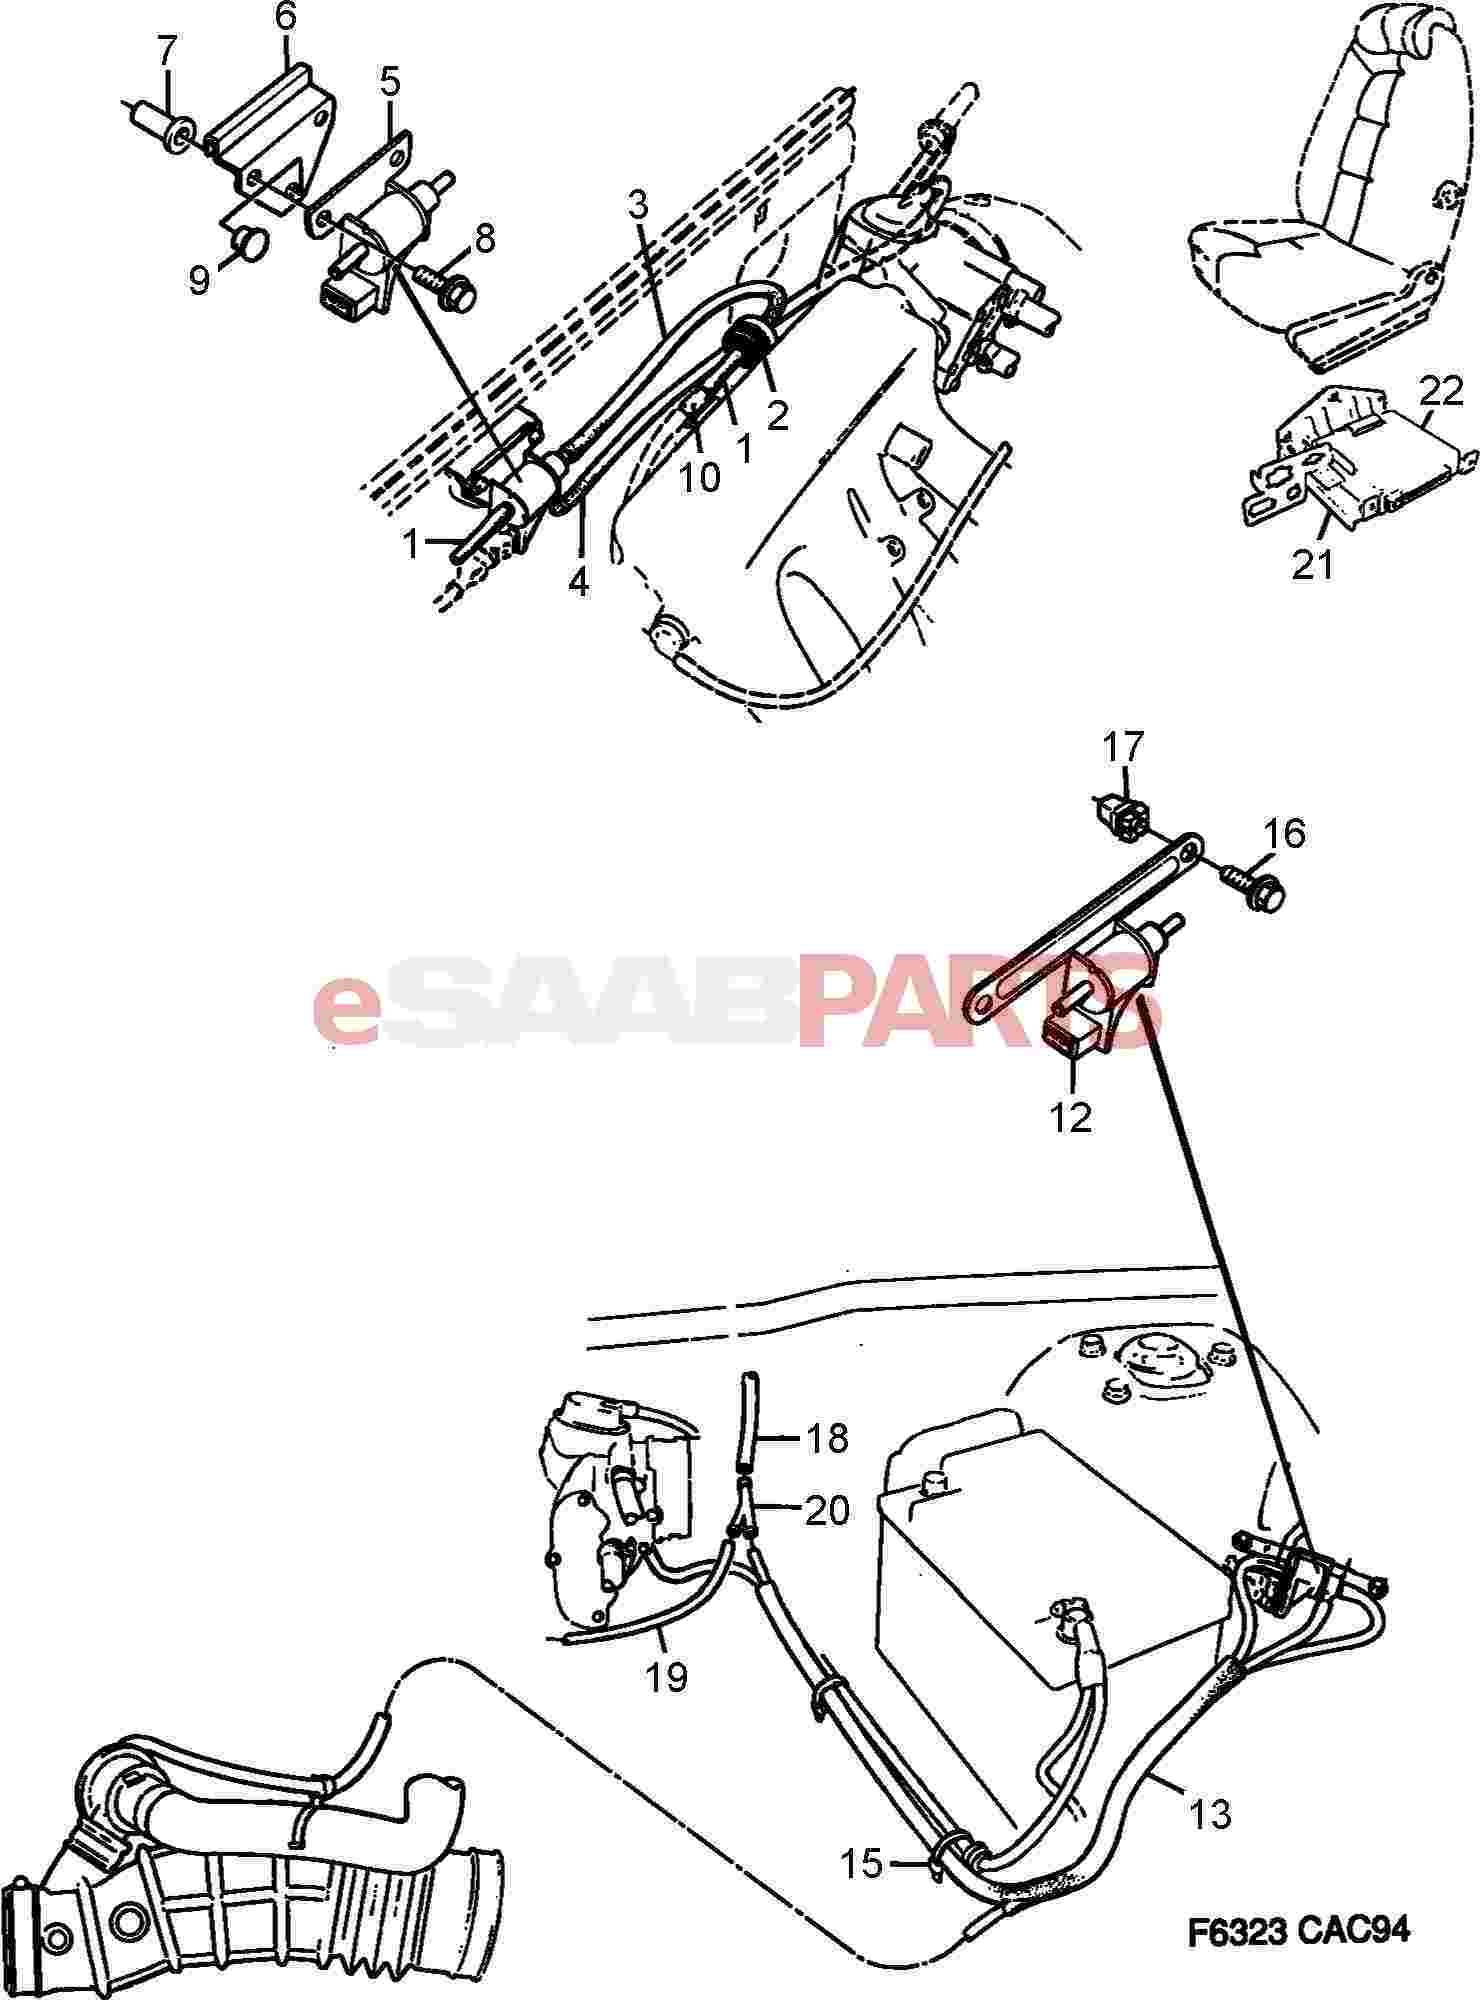 hight resolution of 198282hondacb650sccb650650nighthawkwirewiringharness32100 wiring 198282hondacb650sccb650650nighthawkwirewiringharness32100